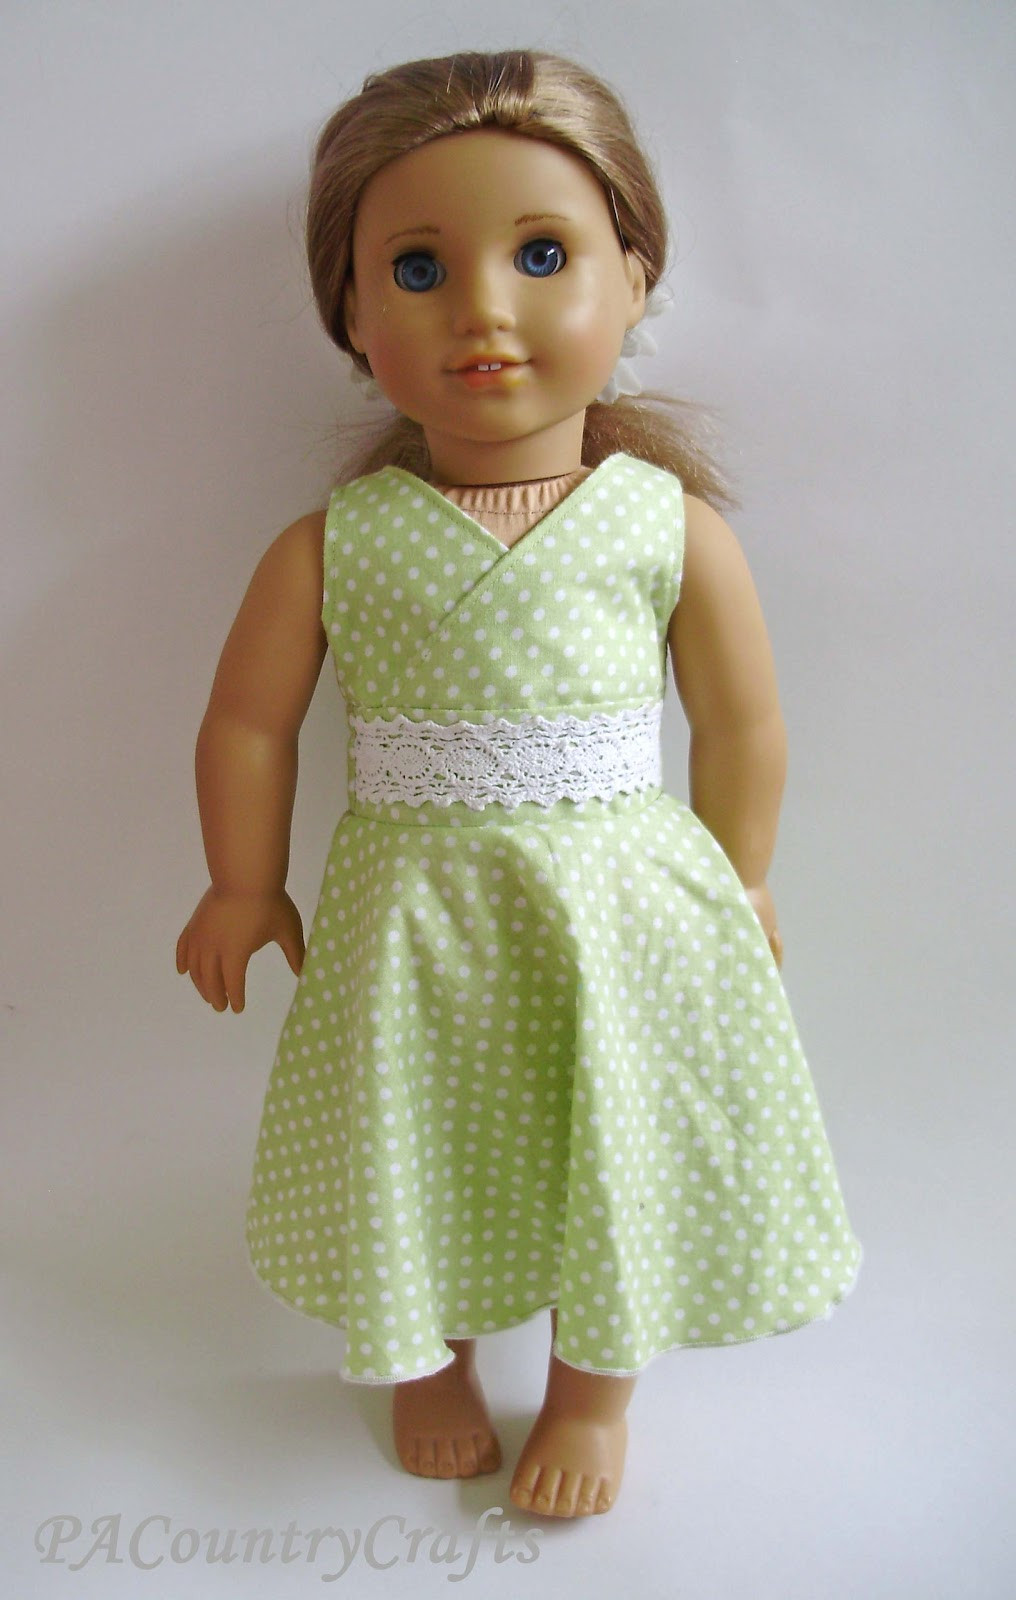 Doll Patterns Luxury Twirly Lace Doll Dress Pattern Of Doll Patterns Best Of Rag Doll Patterns